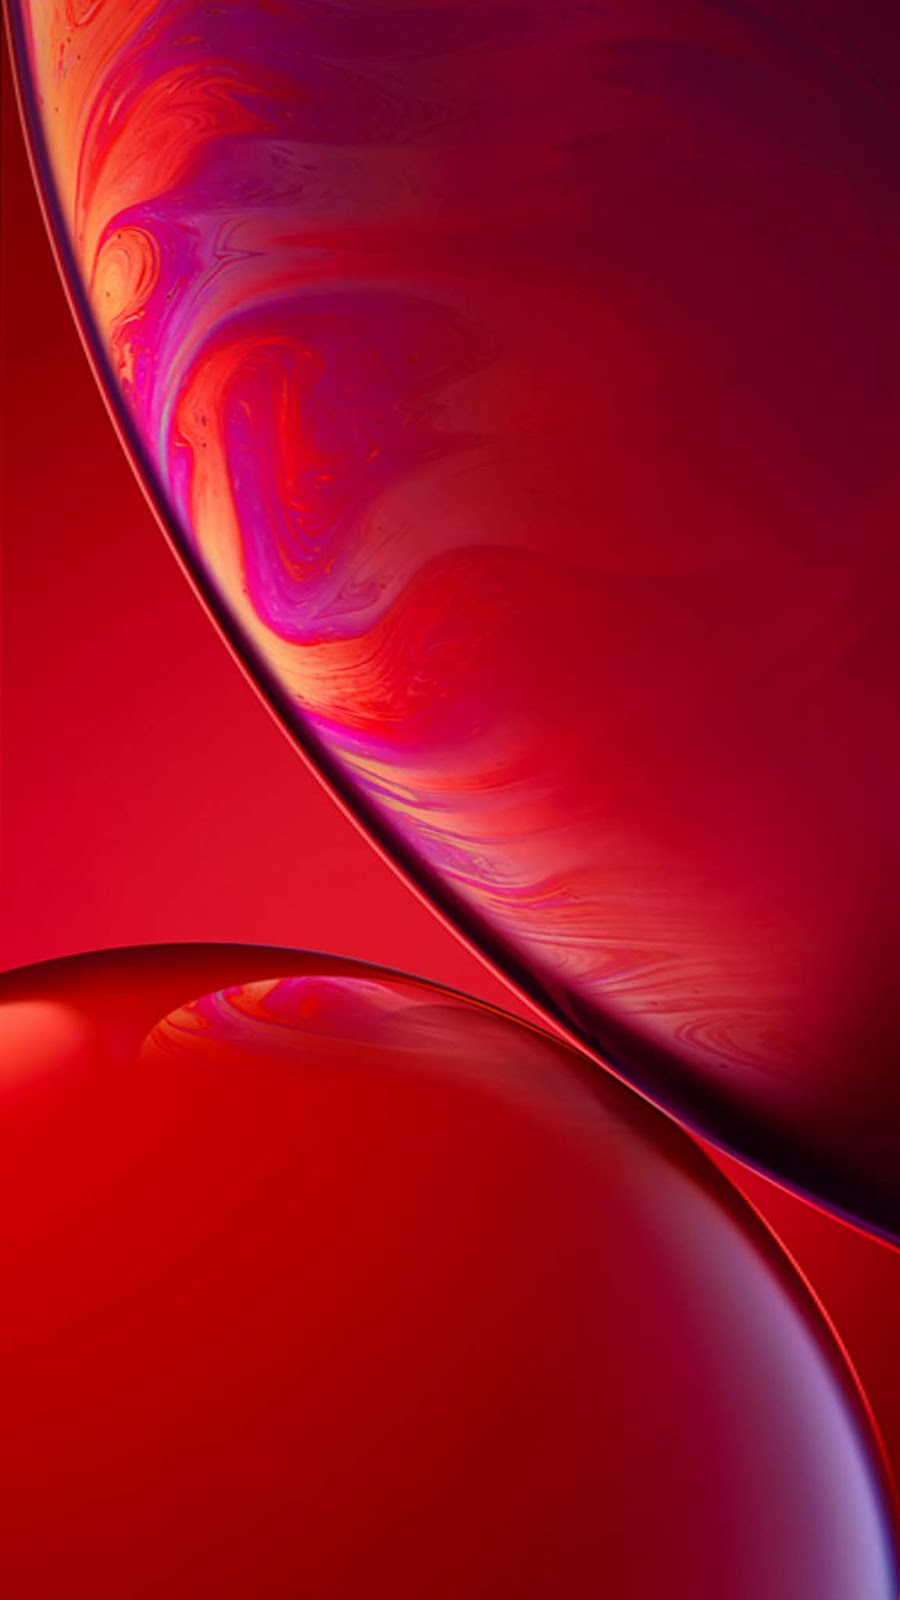 iphone XR Max wallpaper